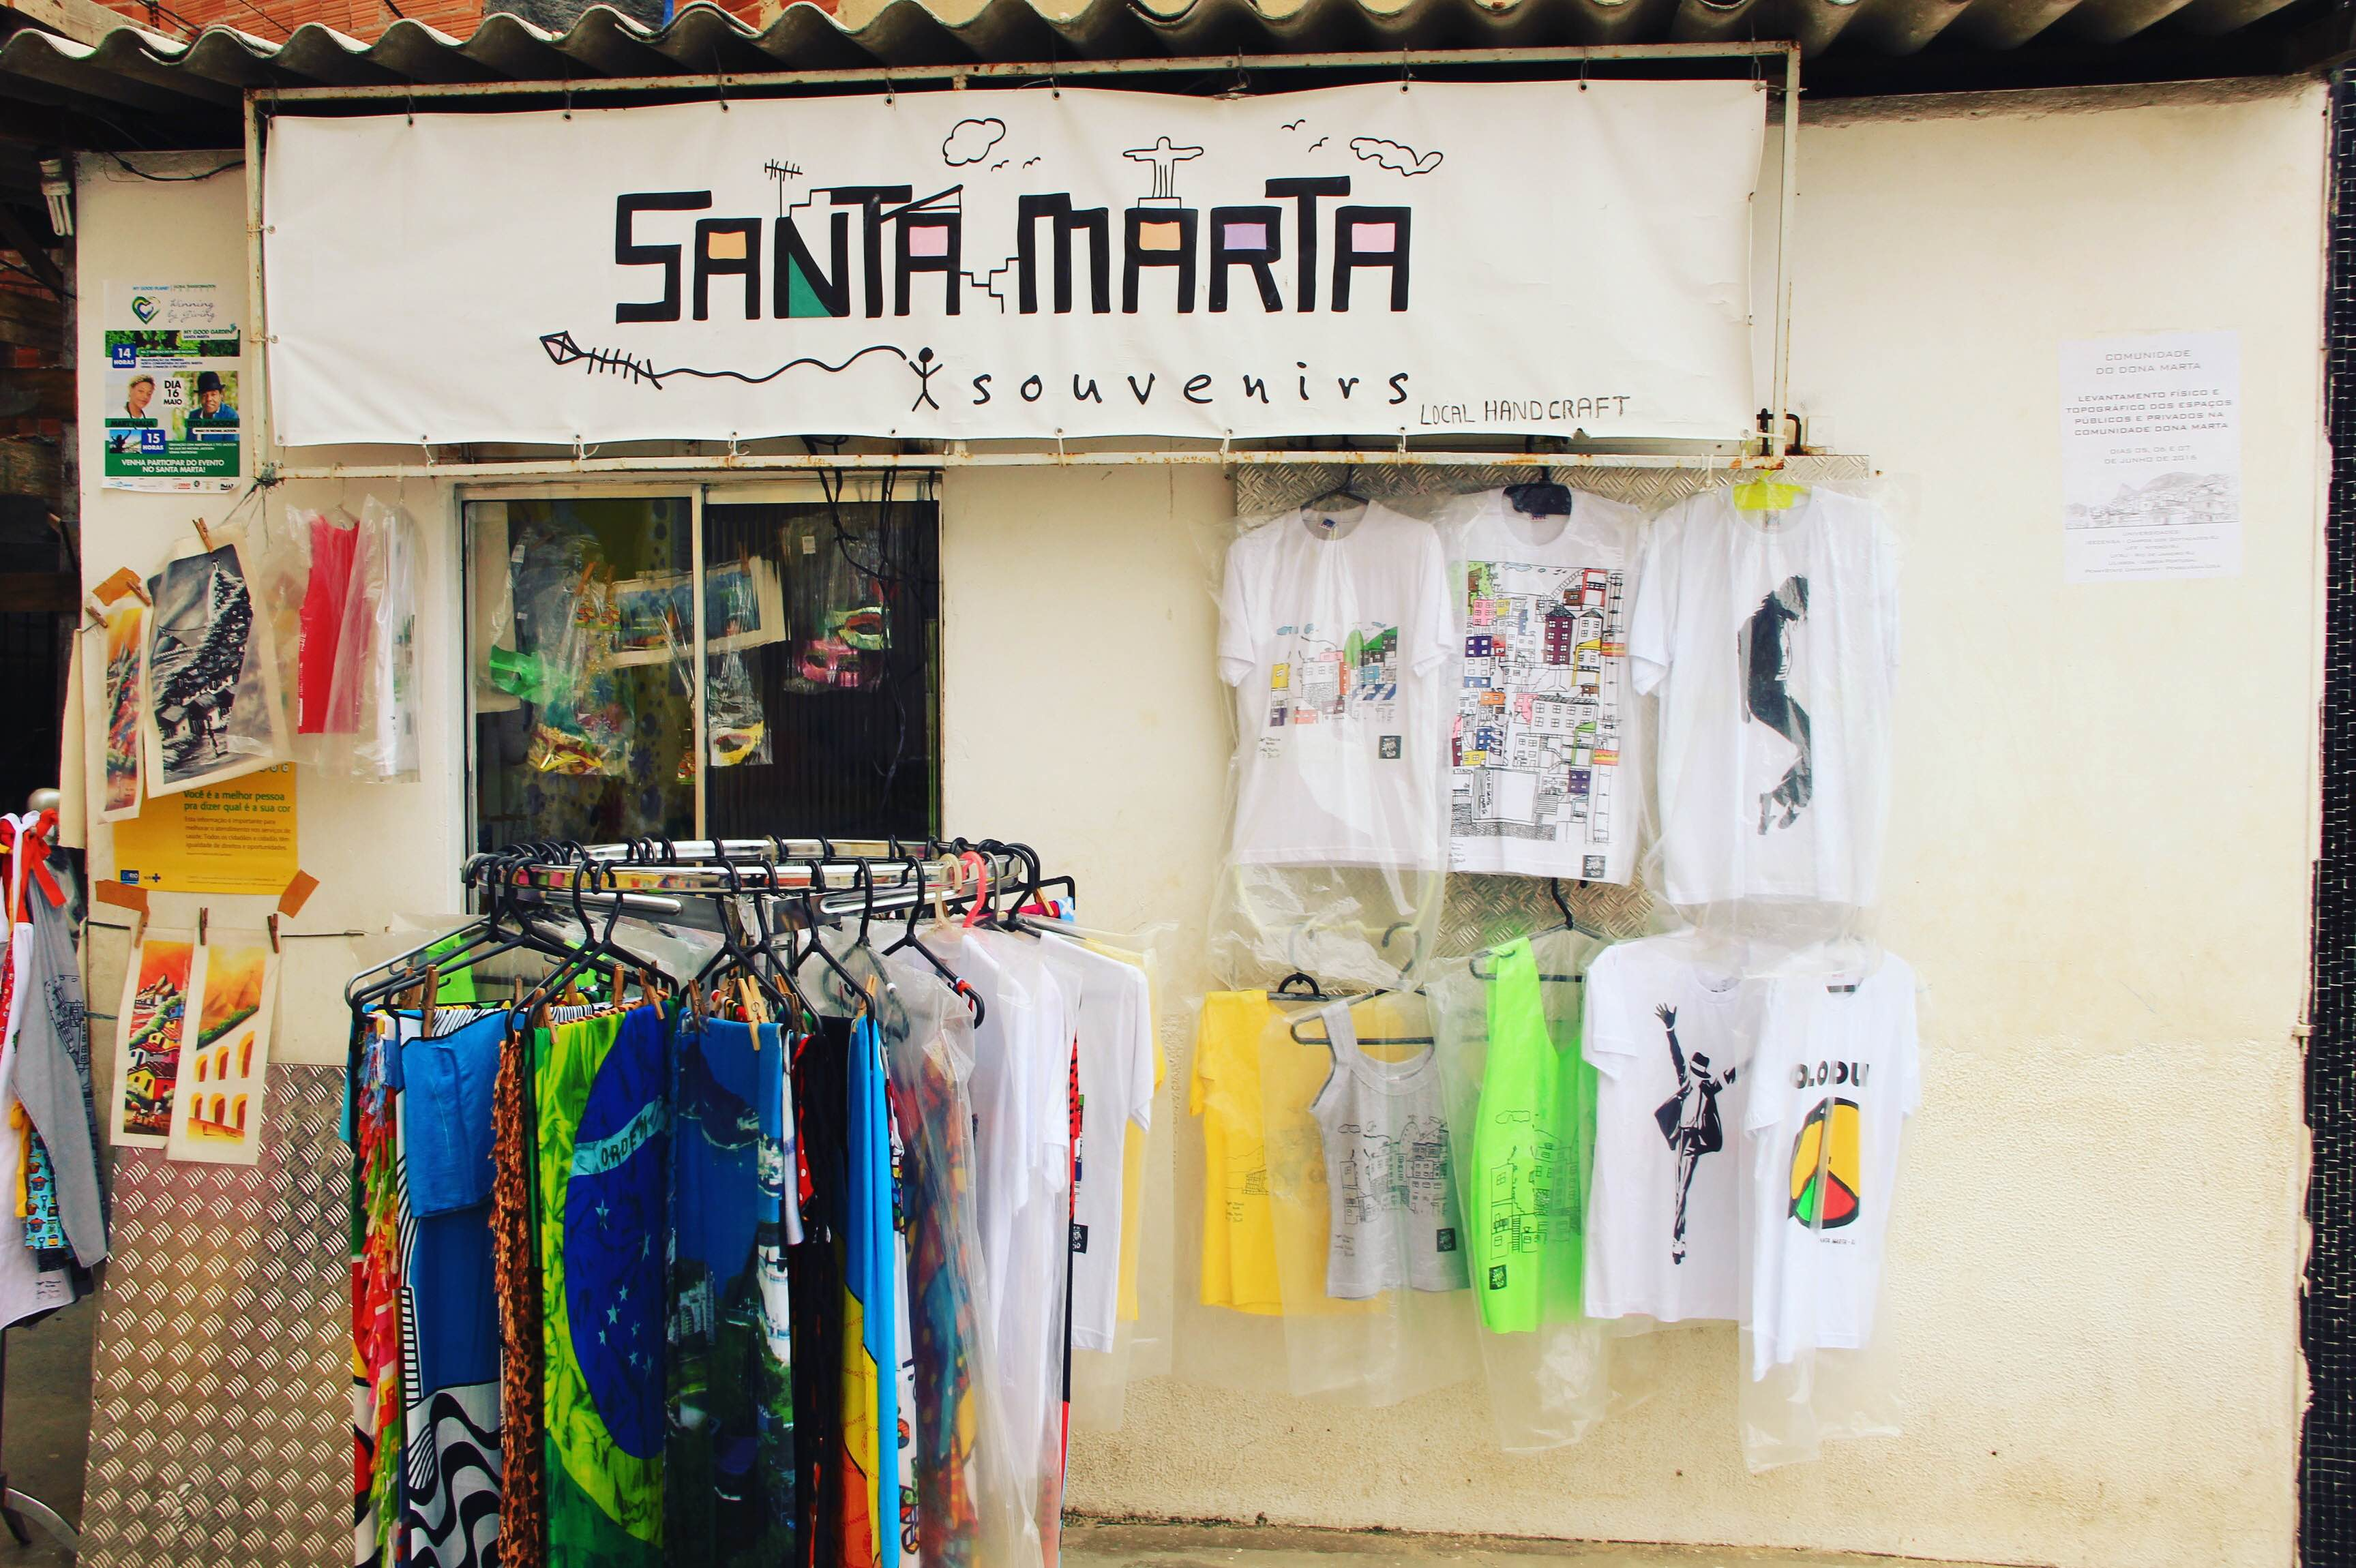 Souvenir shop in Santa Marta (Photo by Phie van Rompu)